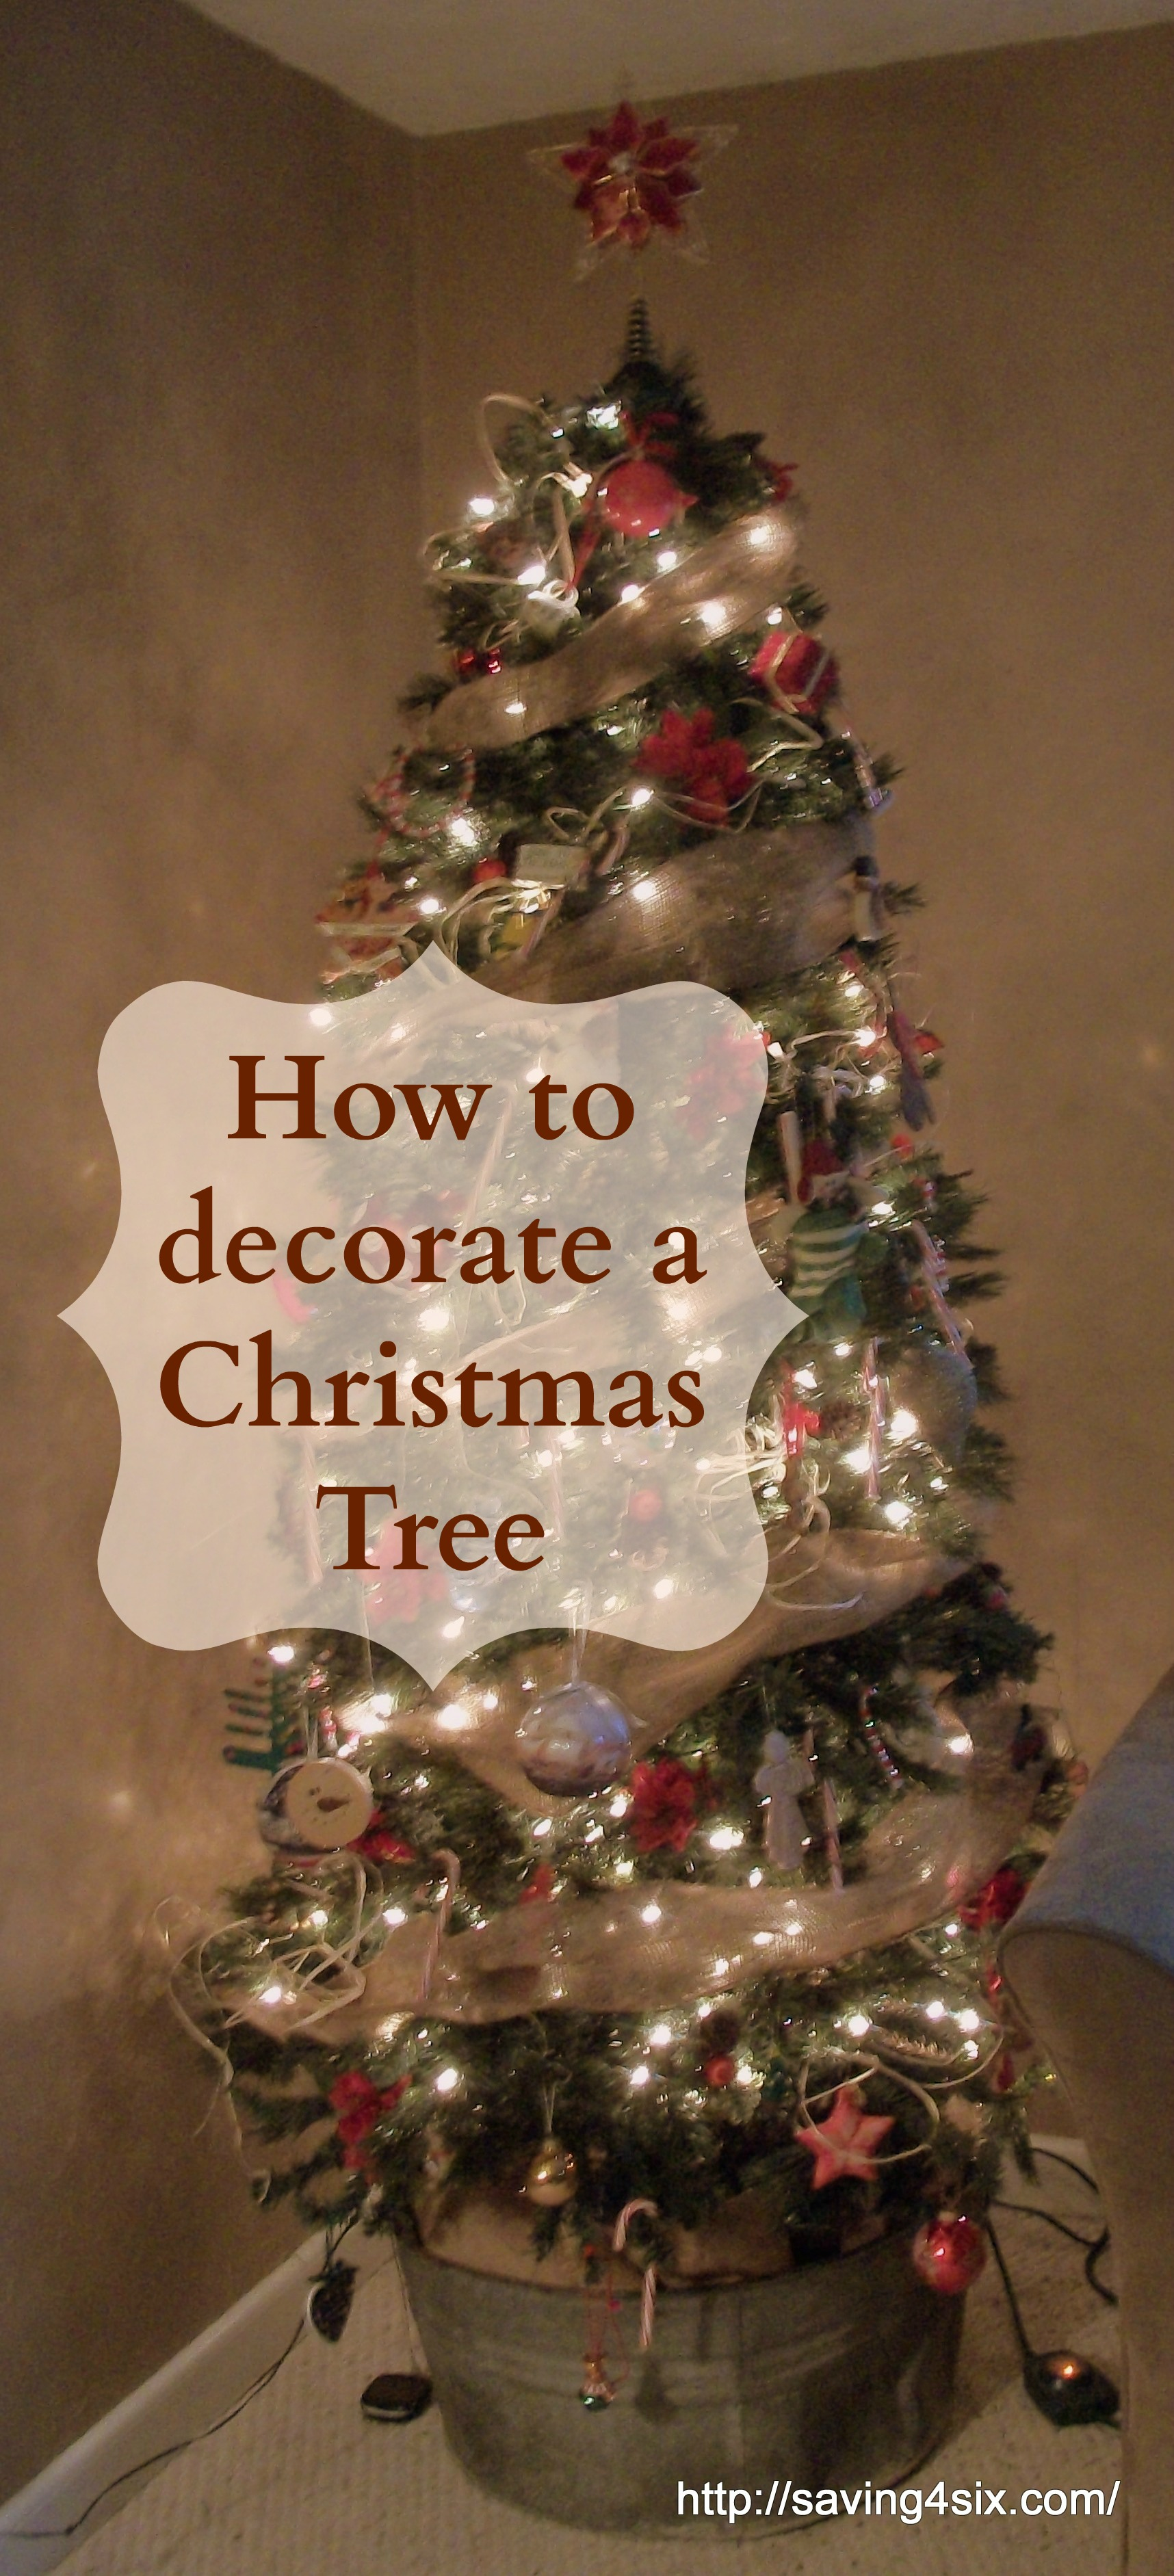 decorating a christmas tree Use food ornaments to decorate your christmas tree this year for an edible, unusual look to your tree.